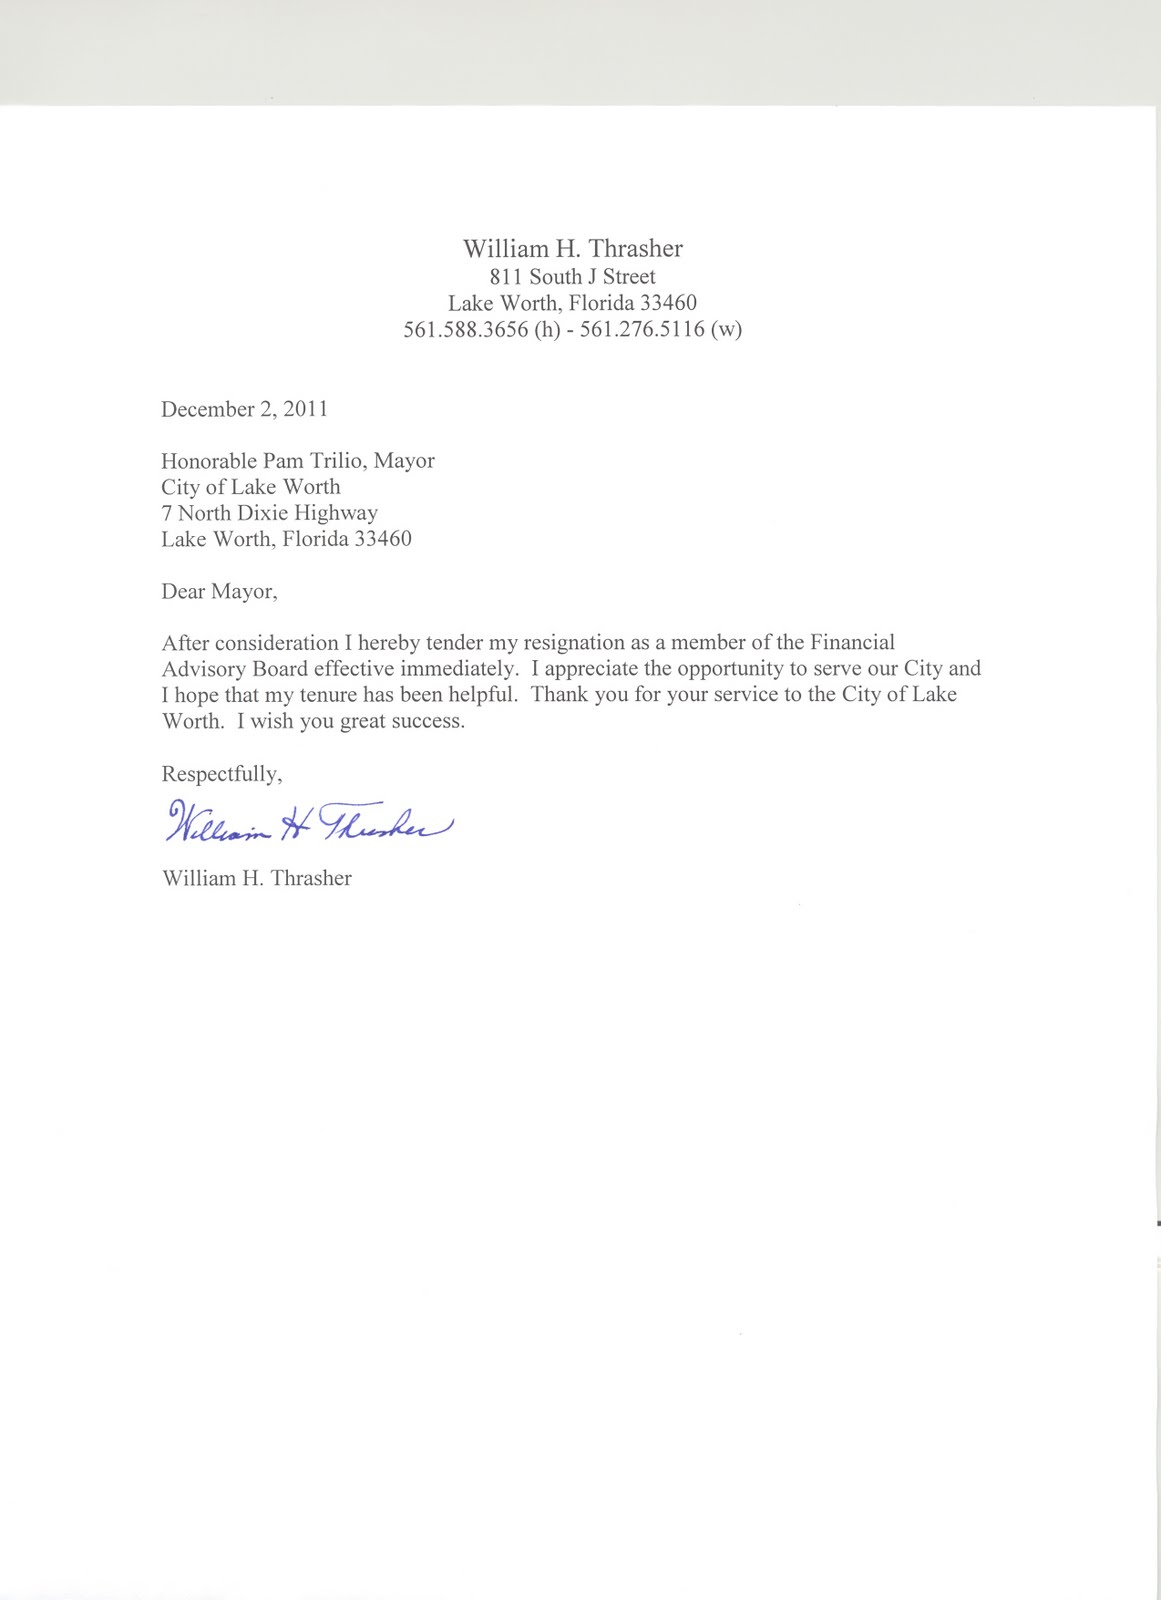 lynn 39 s little bit of trivia bill thrasher resignation letter